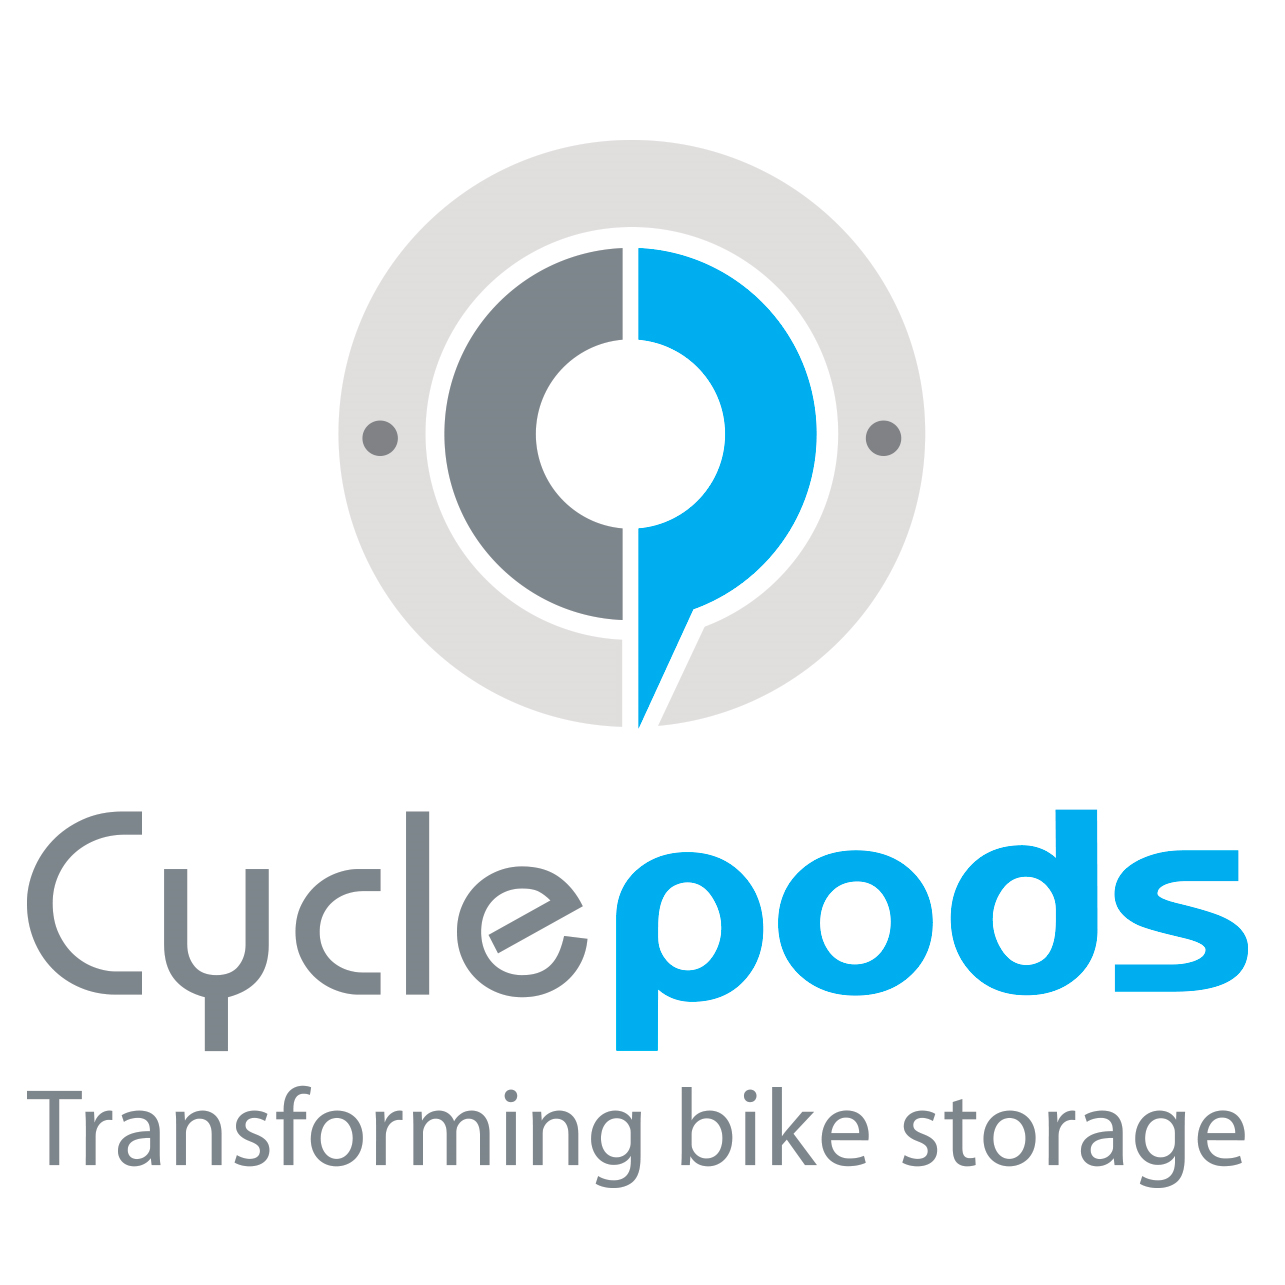 Cyclepods